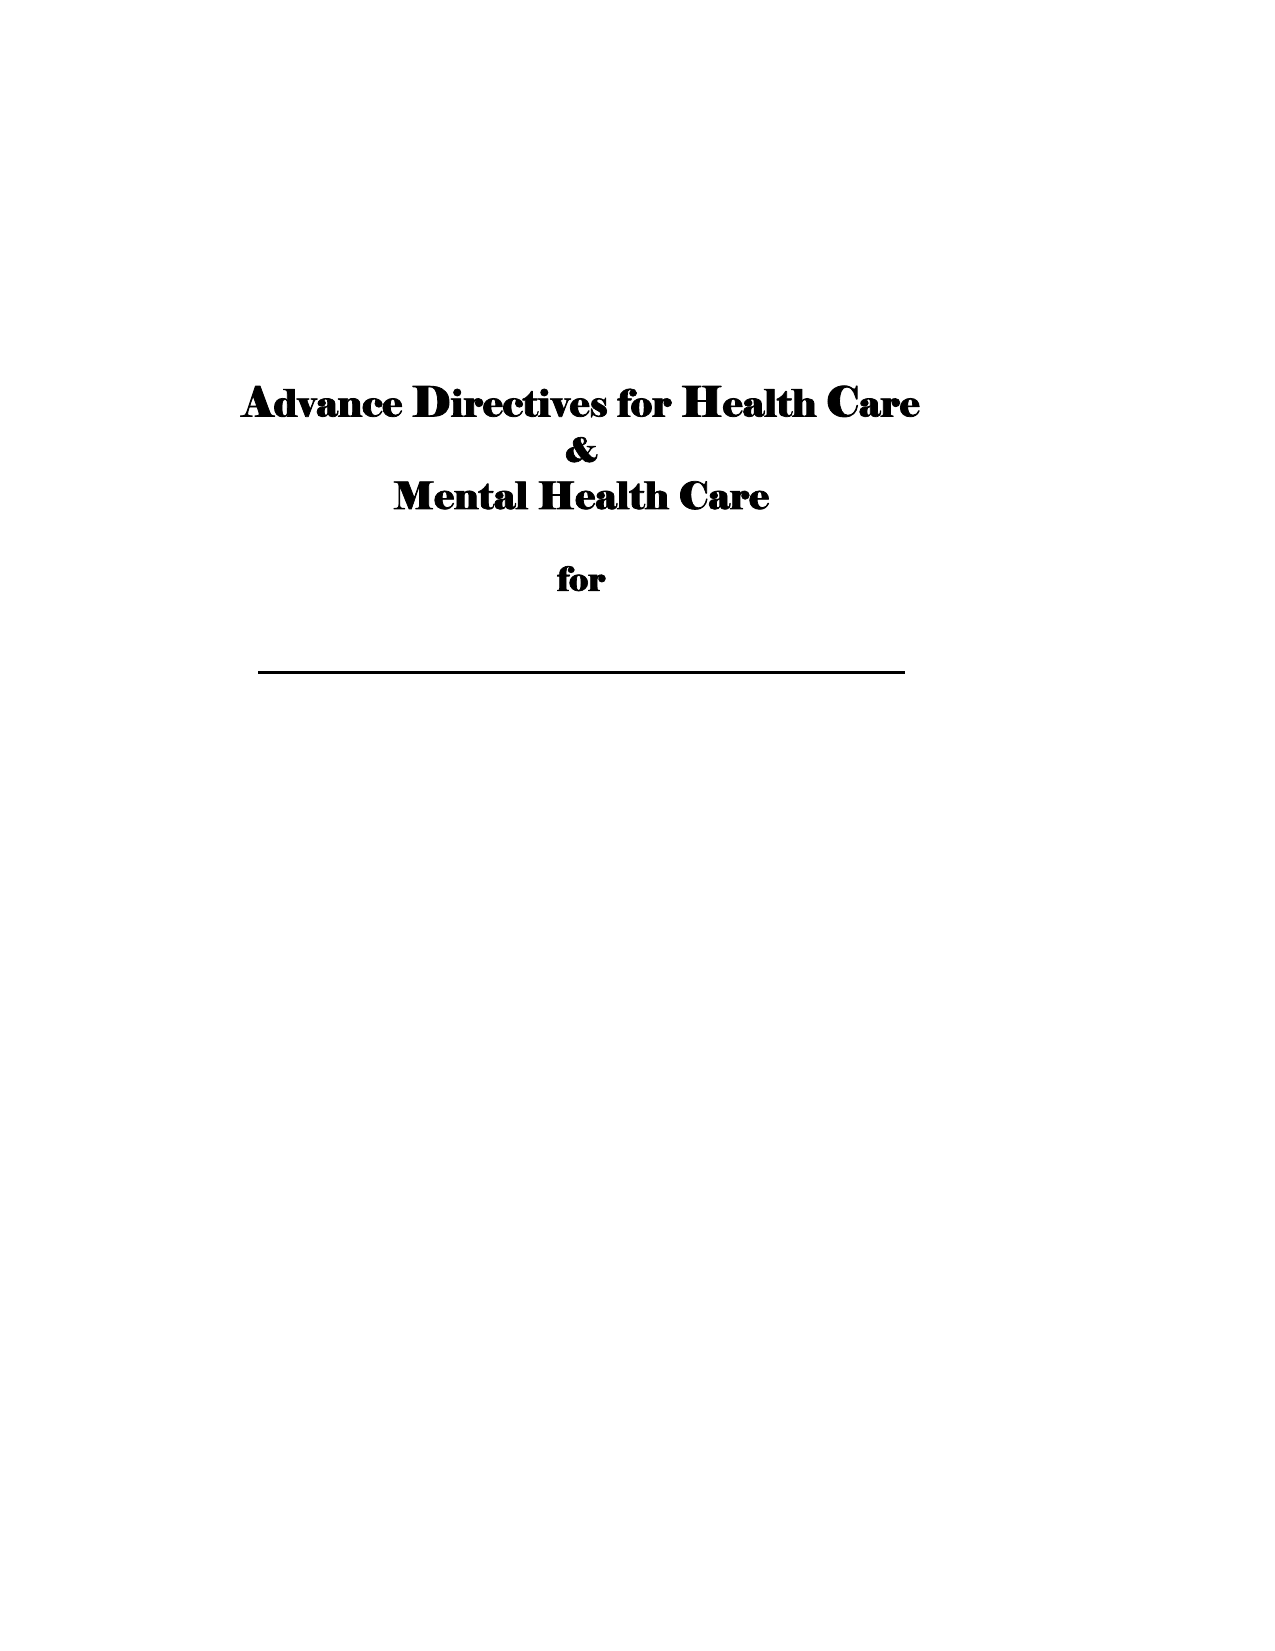 download alaska durable power of attorney form for health care | pdf